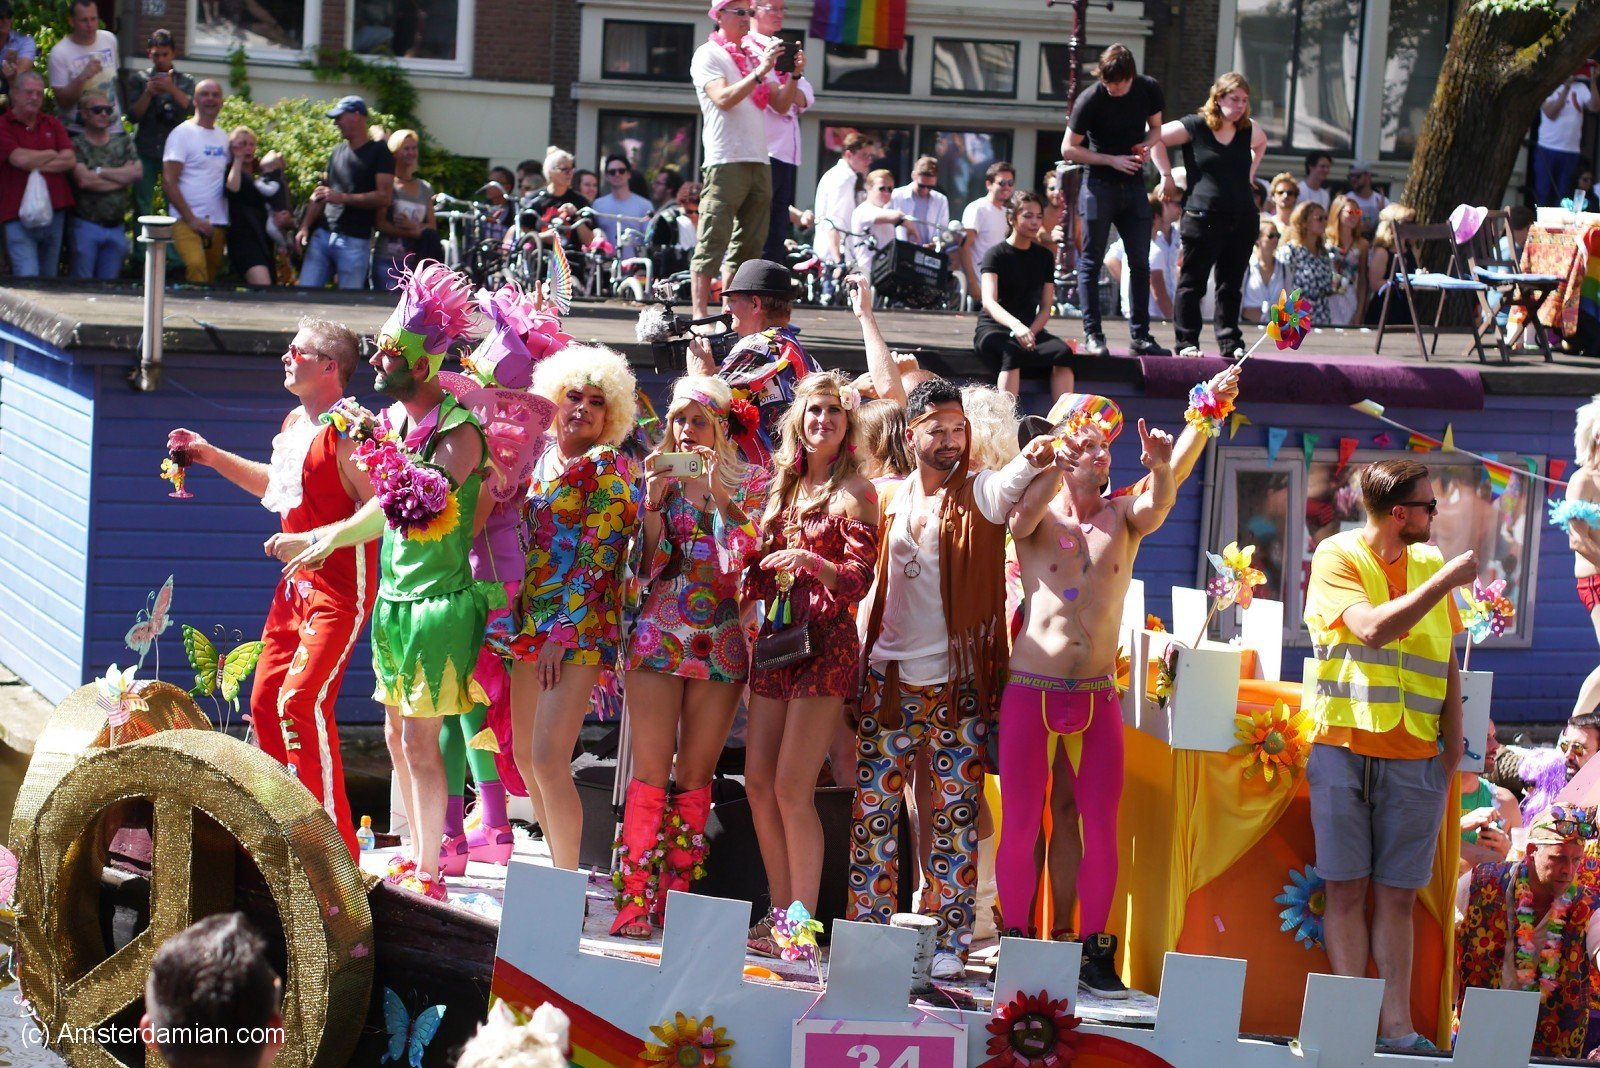 from Cannon when is gay pride in amsterdam